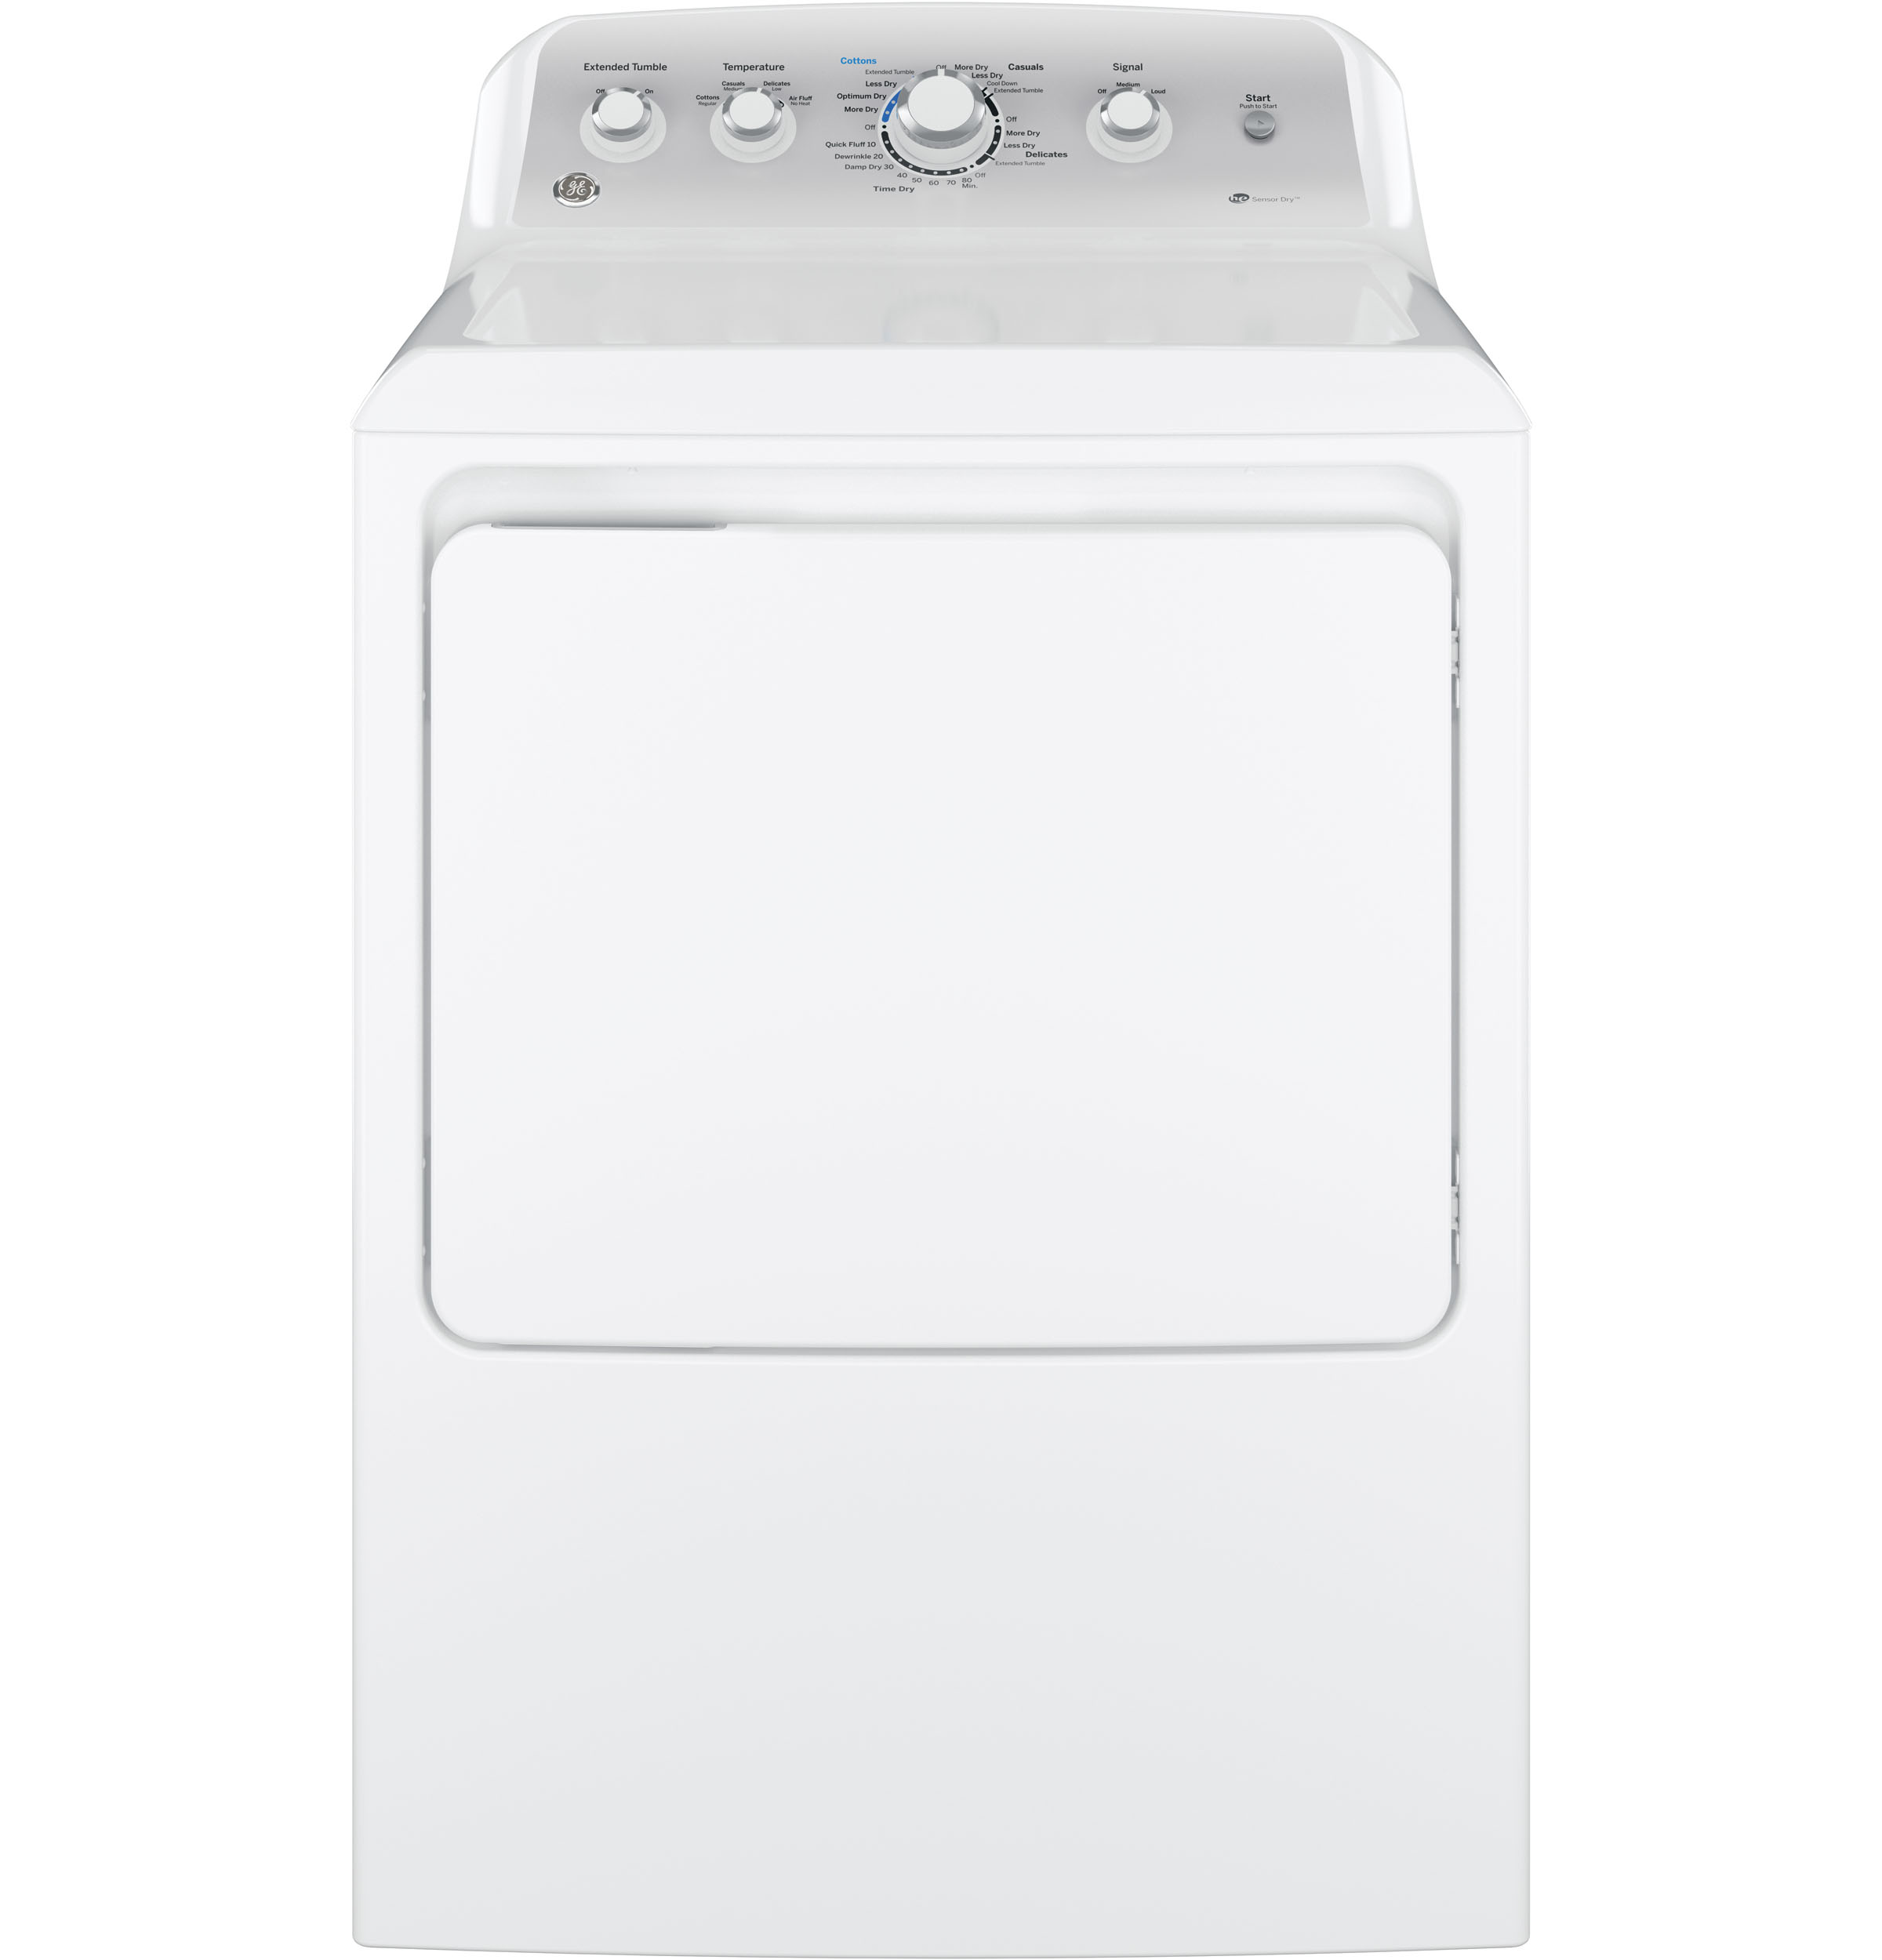 Model: GTD45EASJWS | GE GE® 7.2 cu. ft. Capacity aluminized alloy drum Electric Dryer with Sensor Dry